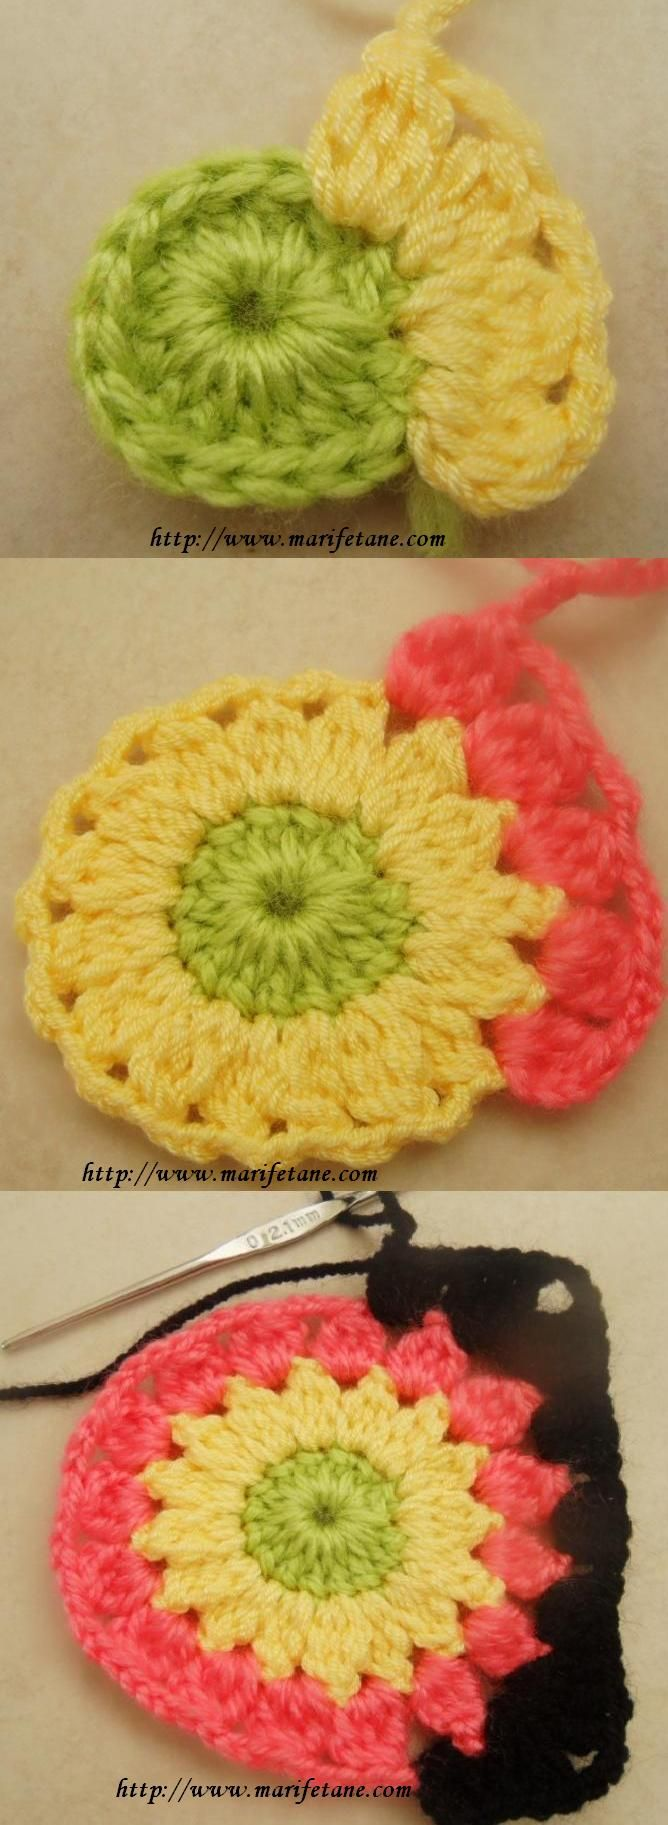 Sunburst granny square pattern ~ crochet